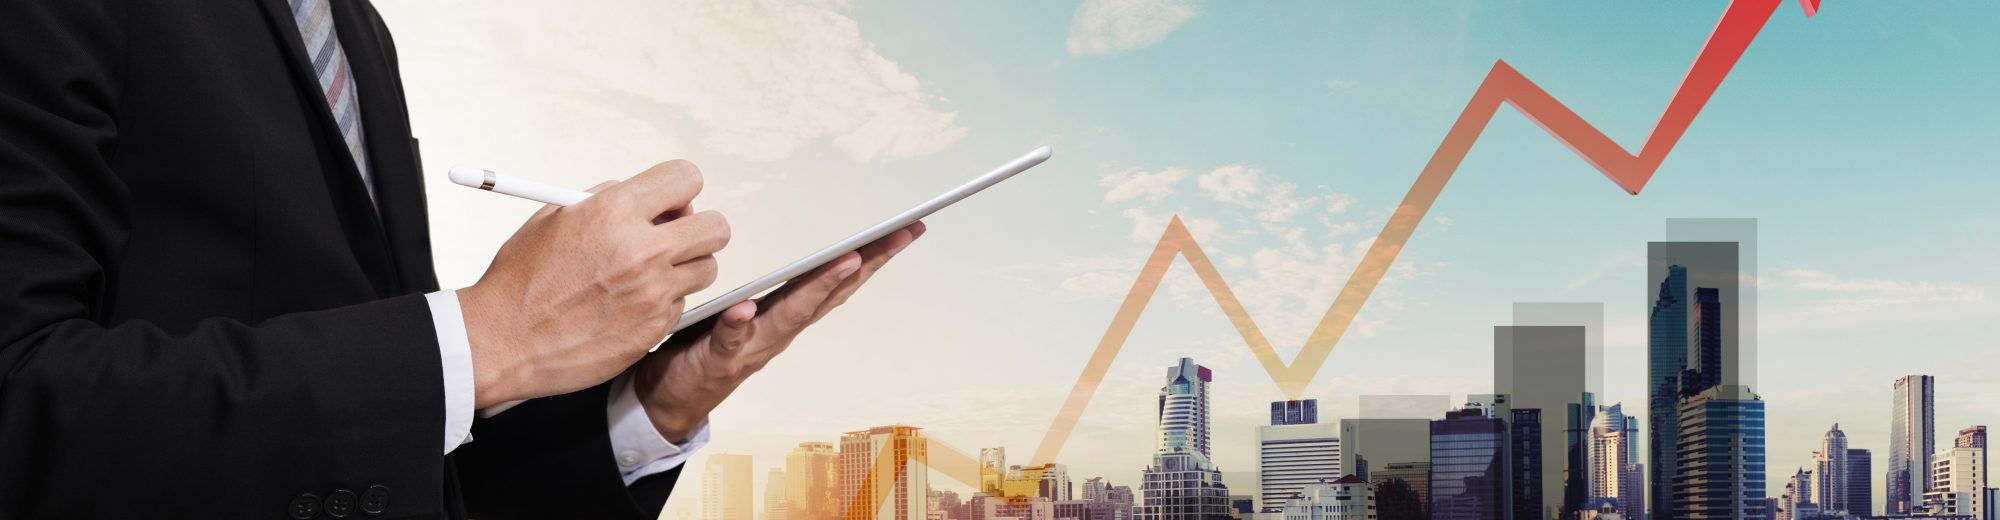 Businessman working on digital tablet, with panorama city view and raising up graph and arrow, representing business growth